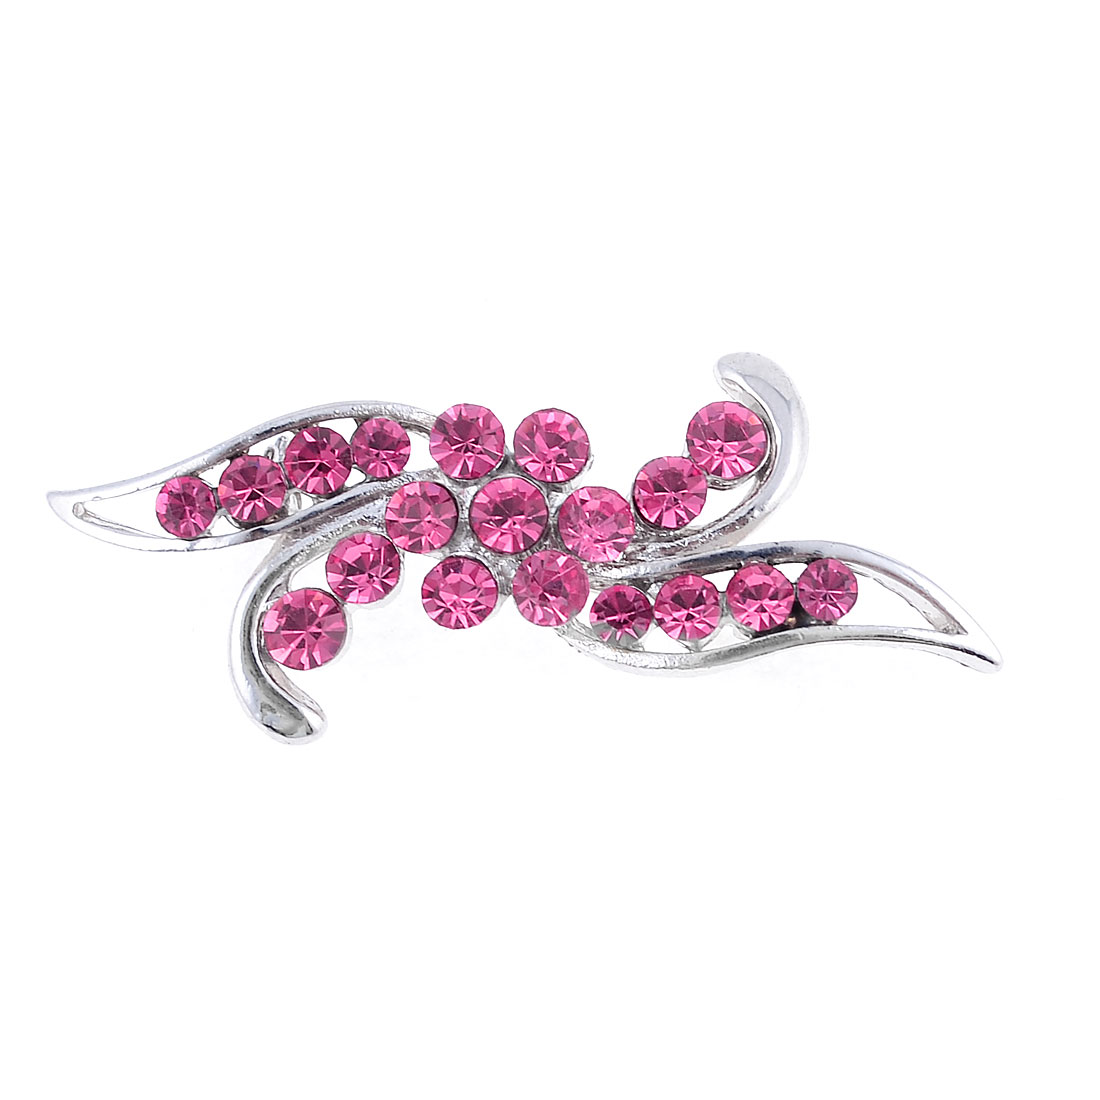 Fuchsia Rhinestones Cluster Leaf Shape Silver Tone Metal Brooch for Ladies